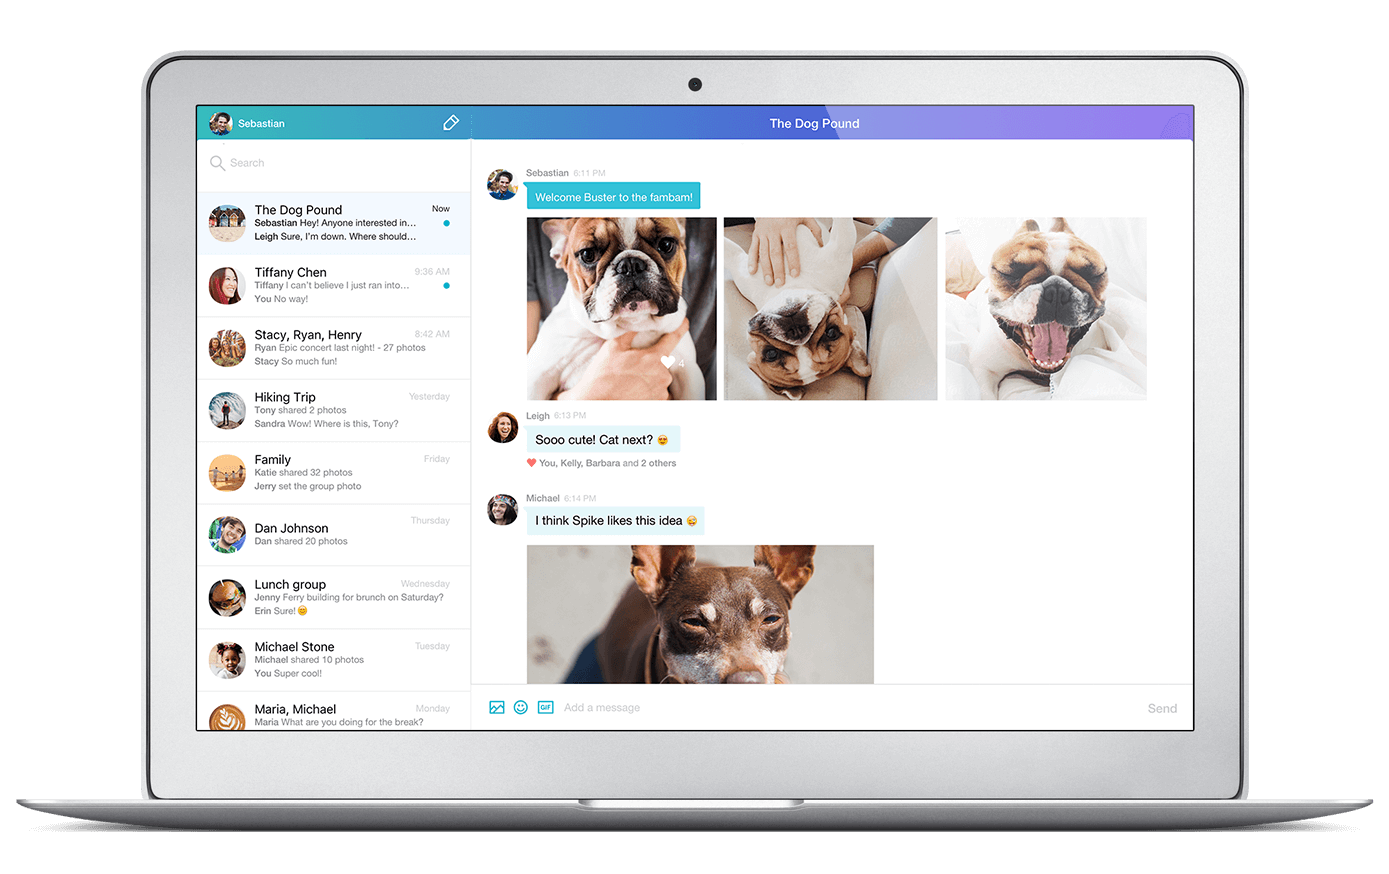 Yahoo launches its revamped Messenger app on Mac and Windows